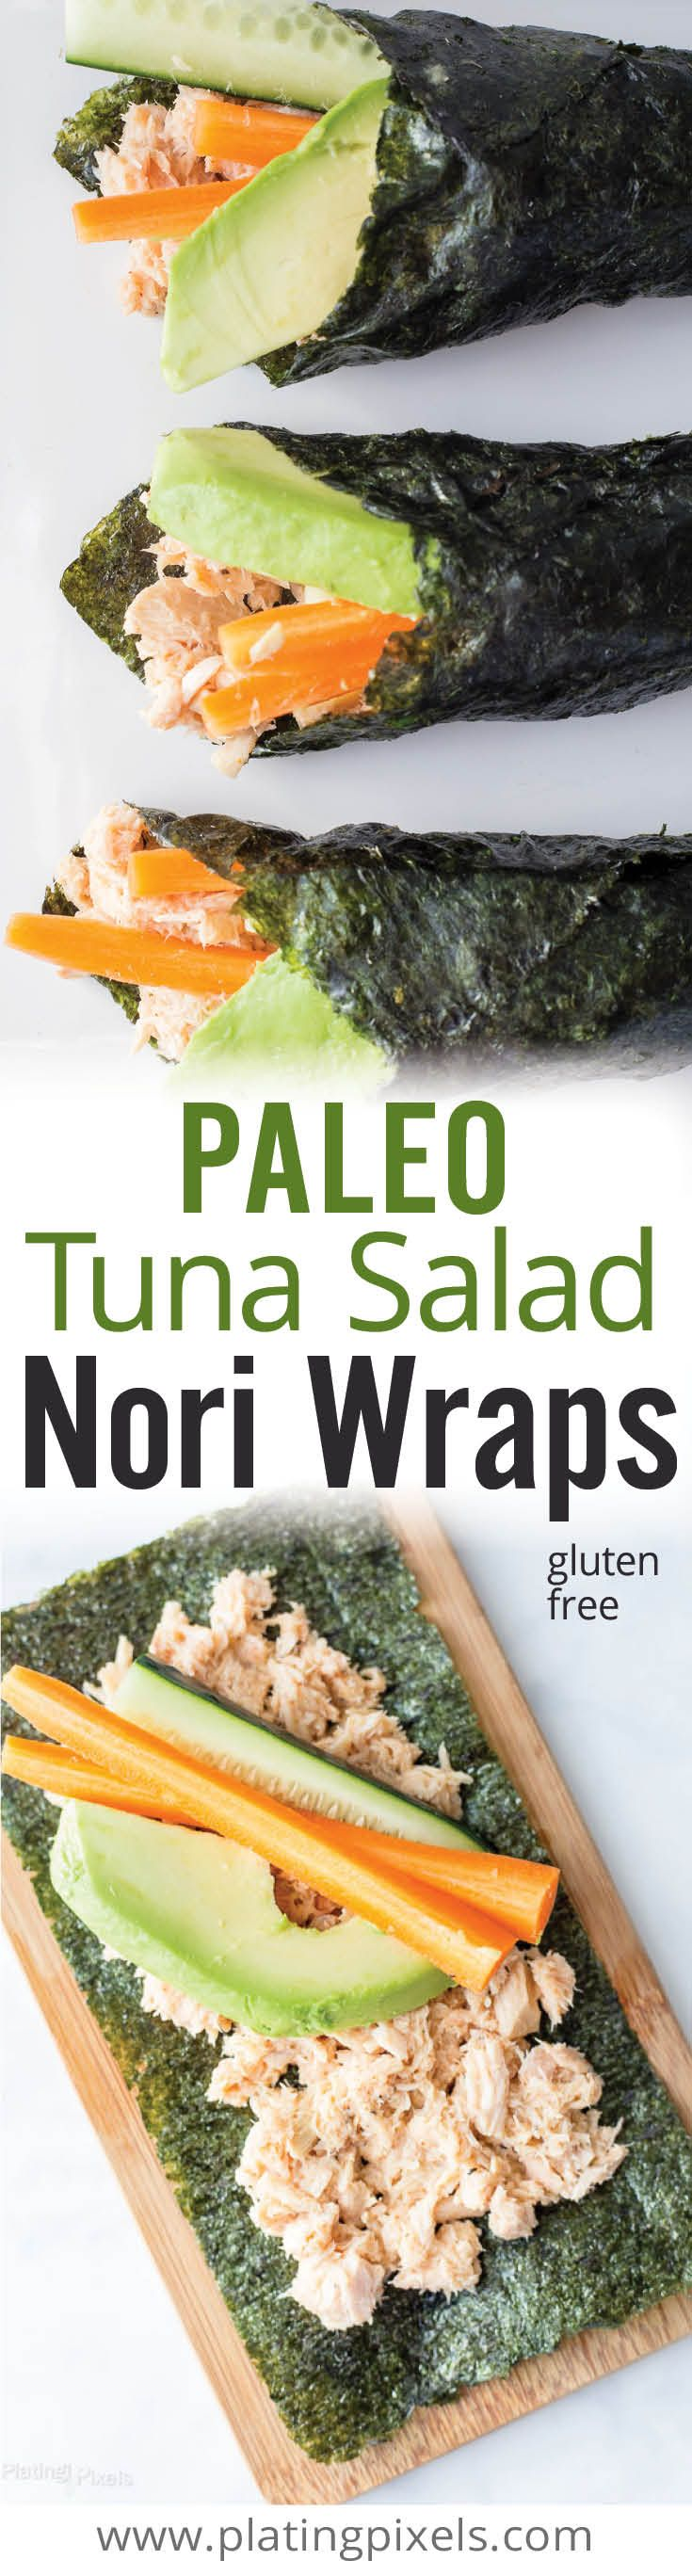 Quick and healthy gluten free paleo tuna salad nori wraps. Albacore tuna, coconut milk, olive oil, lemon juice, avocado, carrot and cucumber on nori…